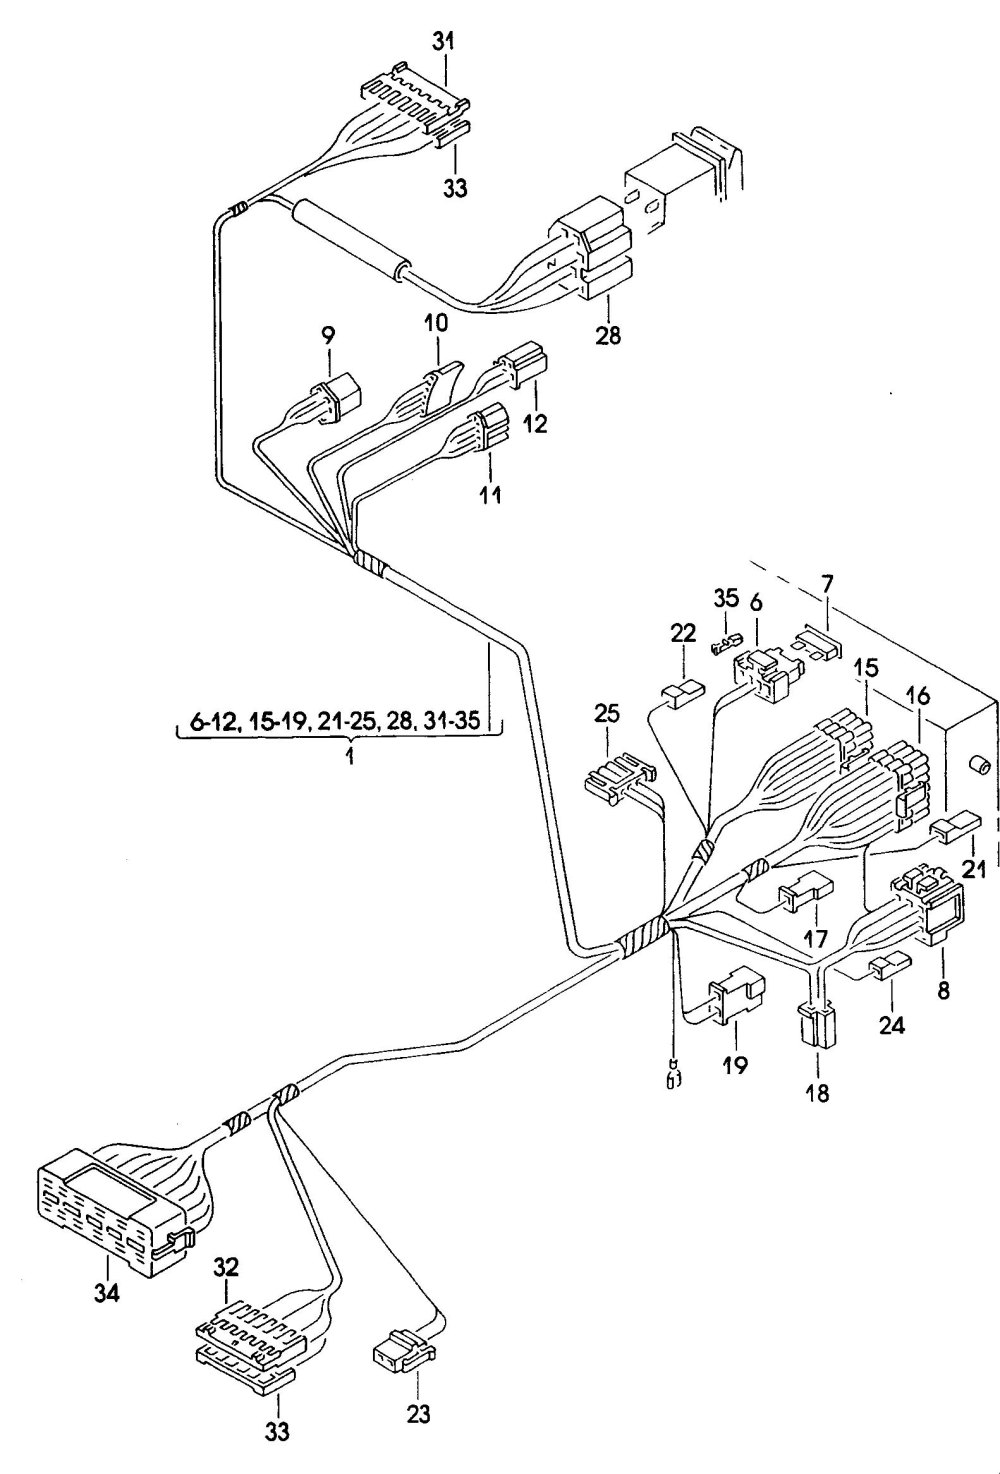 medium resolution of 2006 volkswagen passat air conditioning diagram 2000 passat fuse panel wiring diagram 2006 jetta fuse diagram